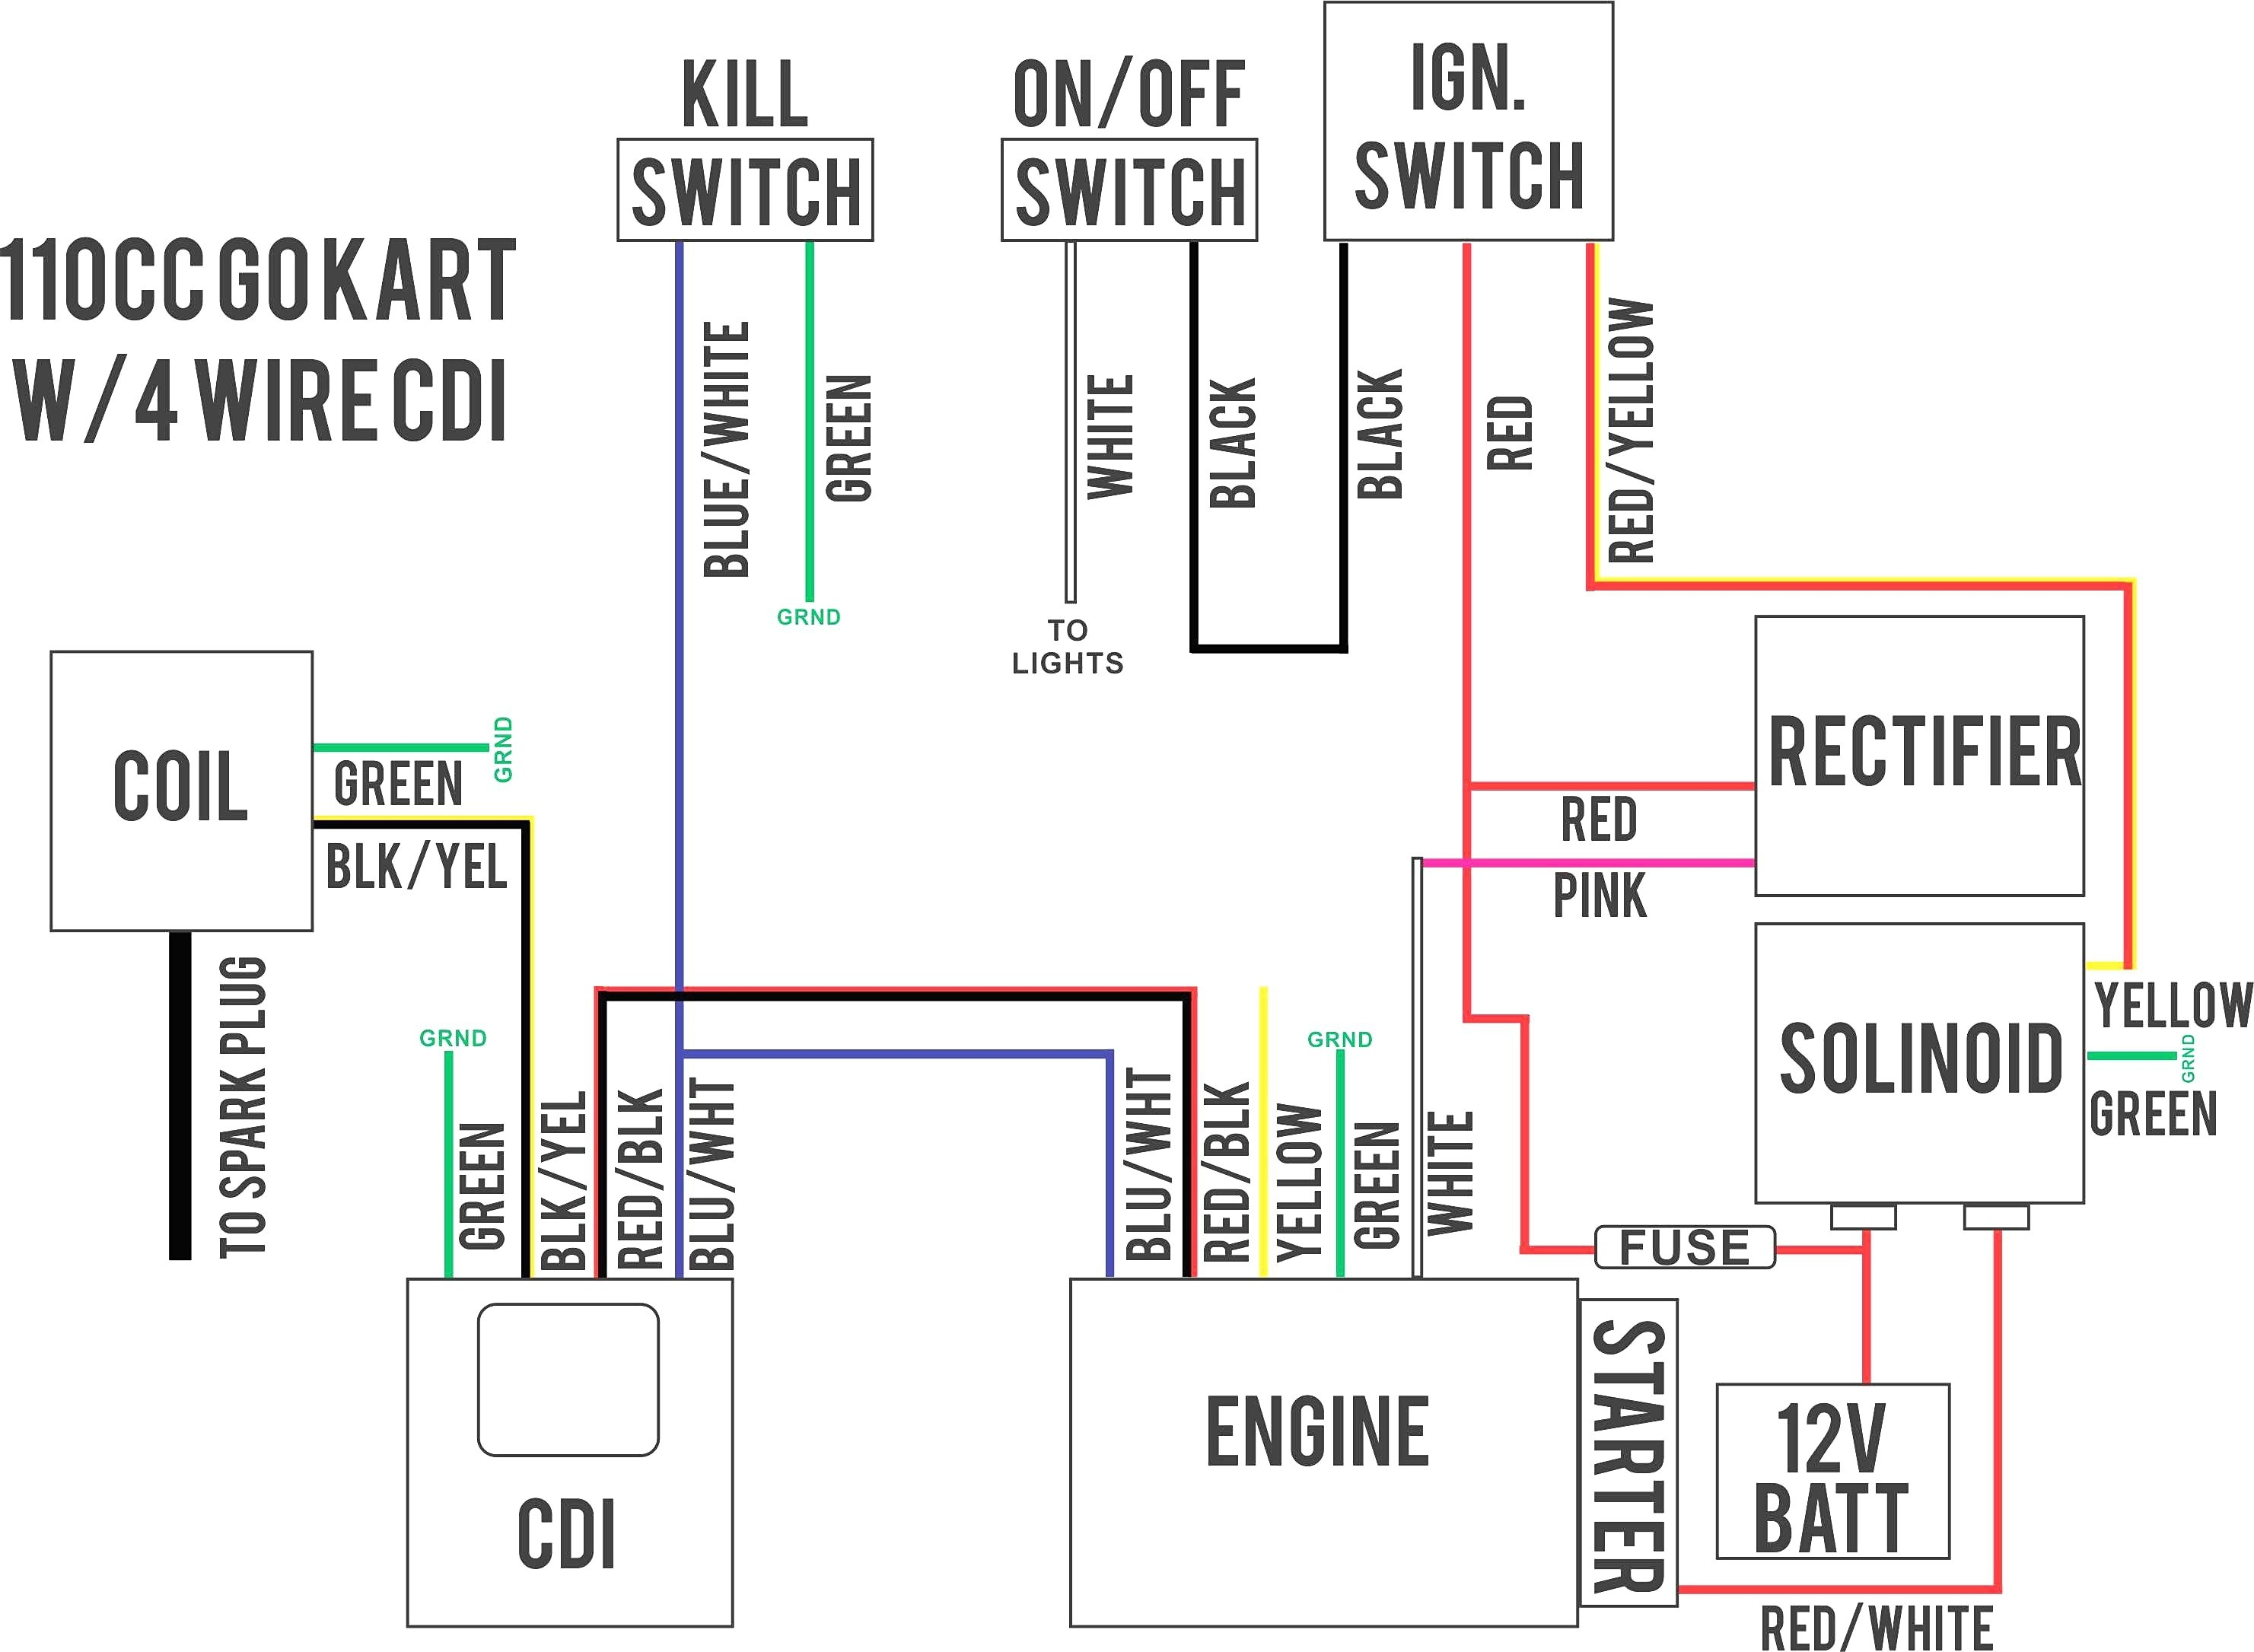 50Cc Scooter Ignition Switch Wiring Diagram | Wiring Diagram - Scooter Ignition Switch Wiring Diagram